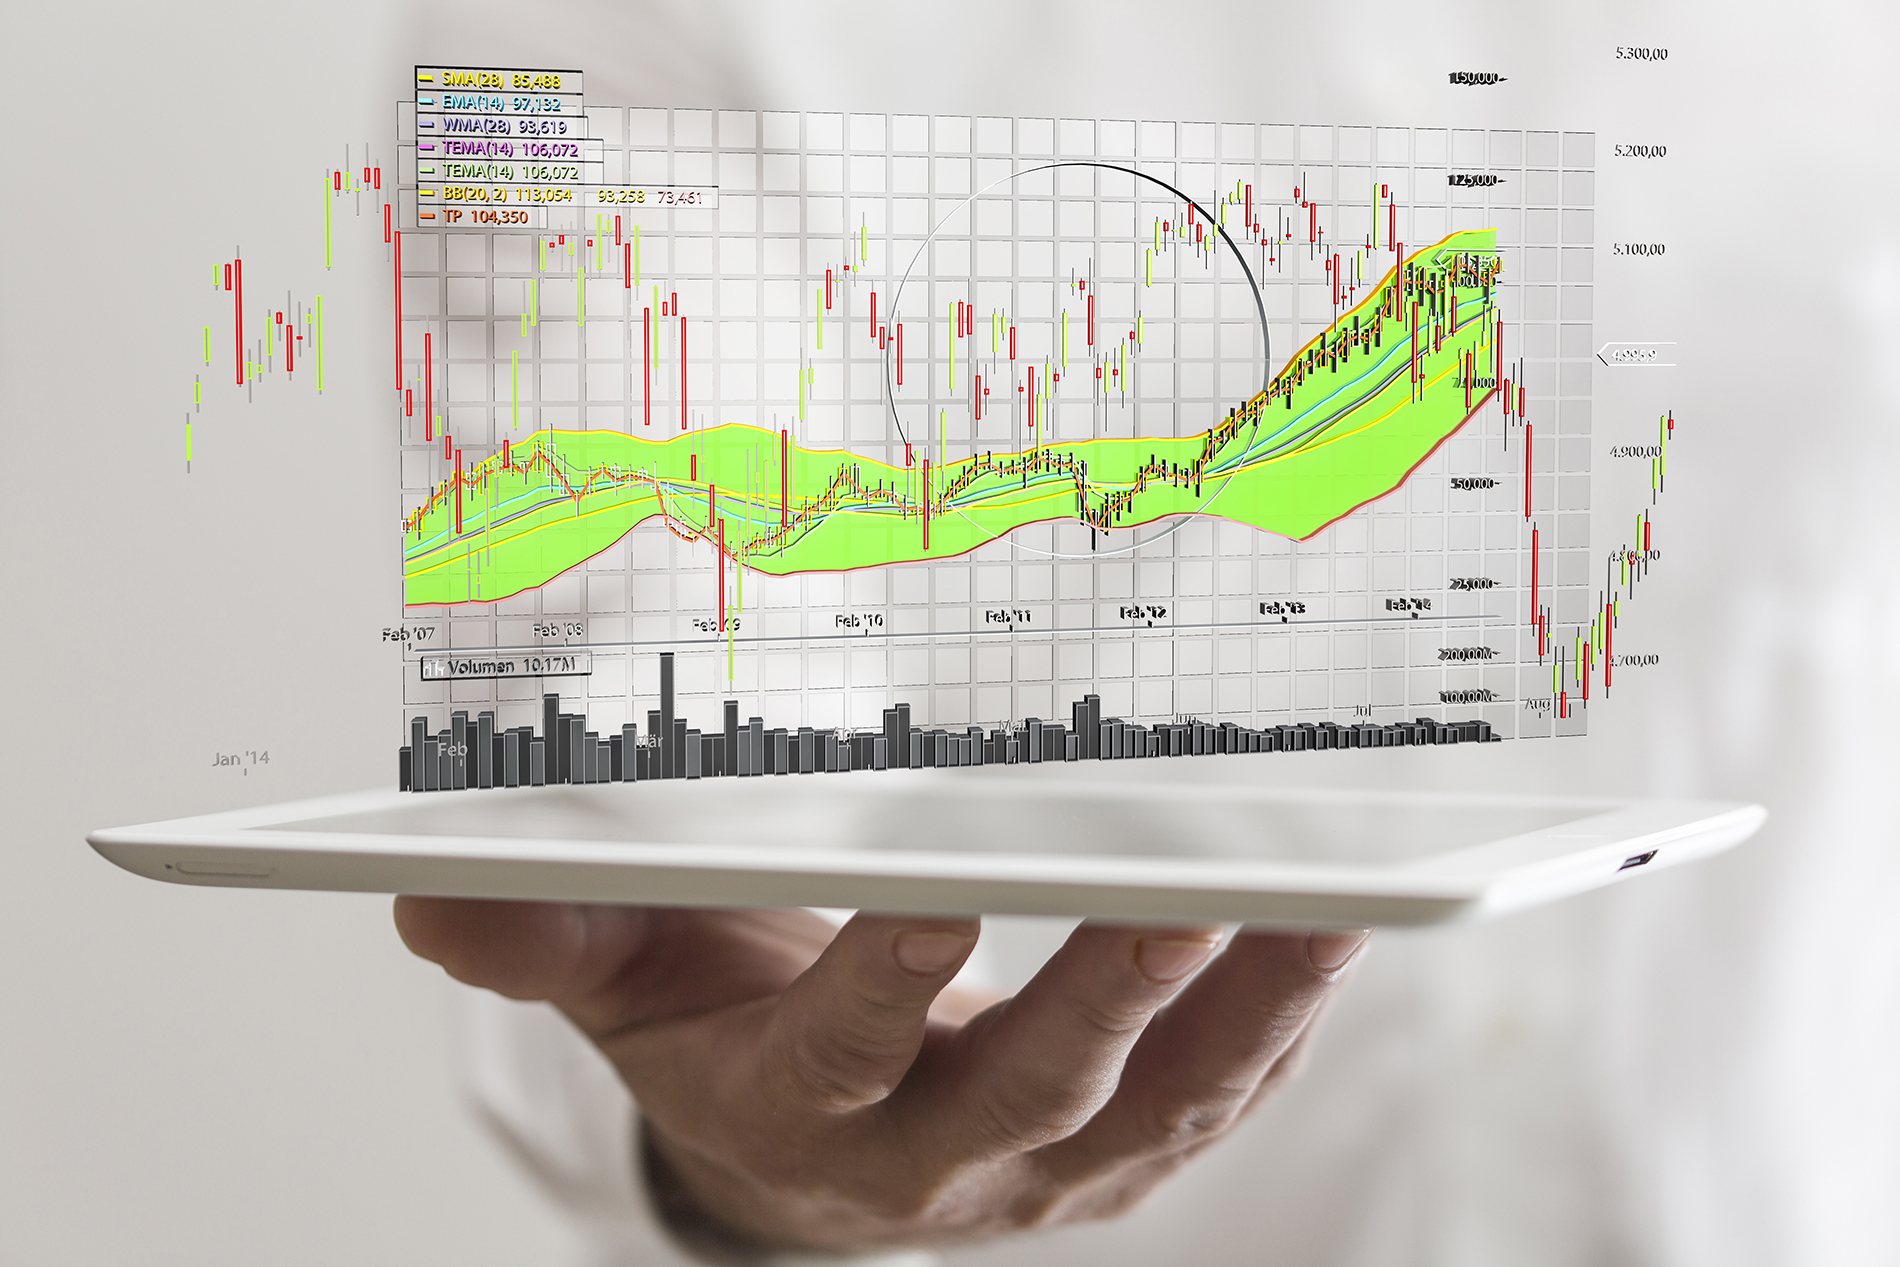 Tablet at the top of the stock market charts 53078